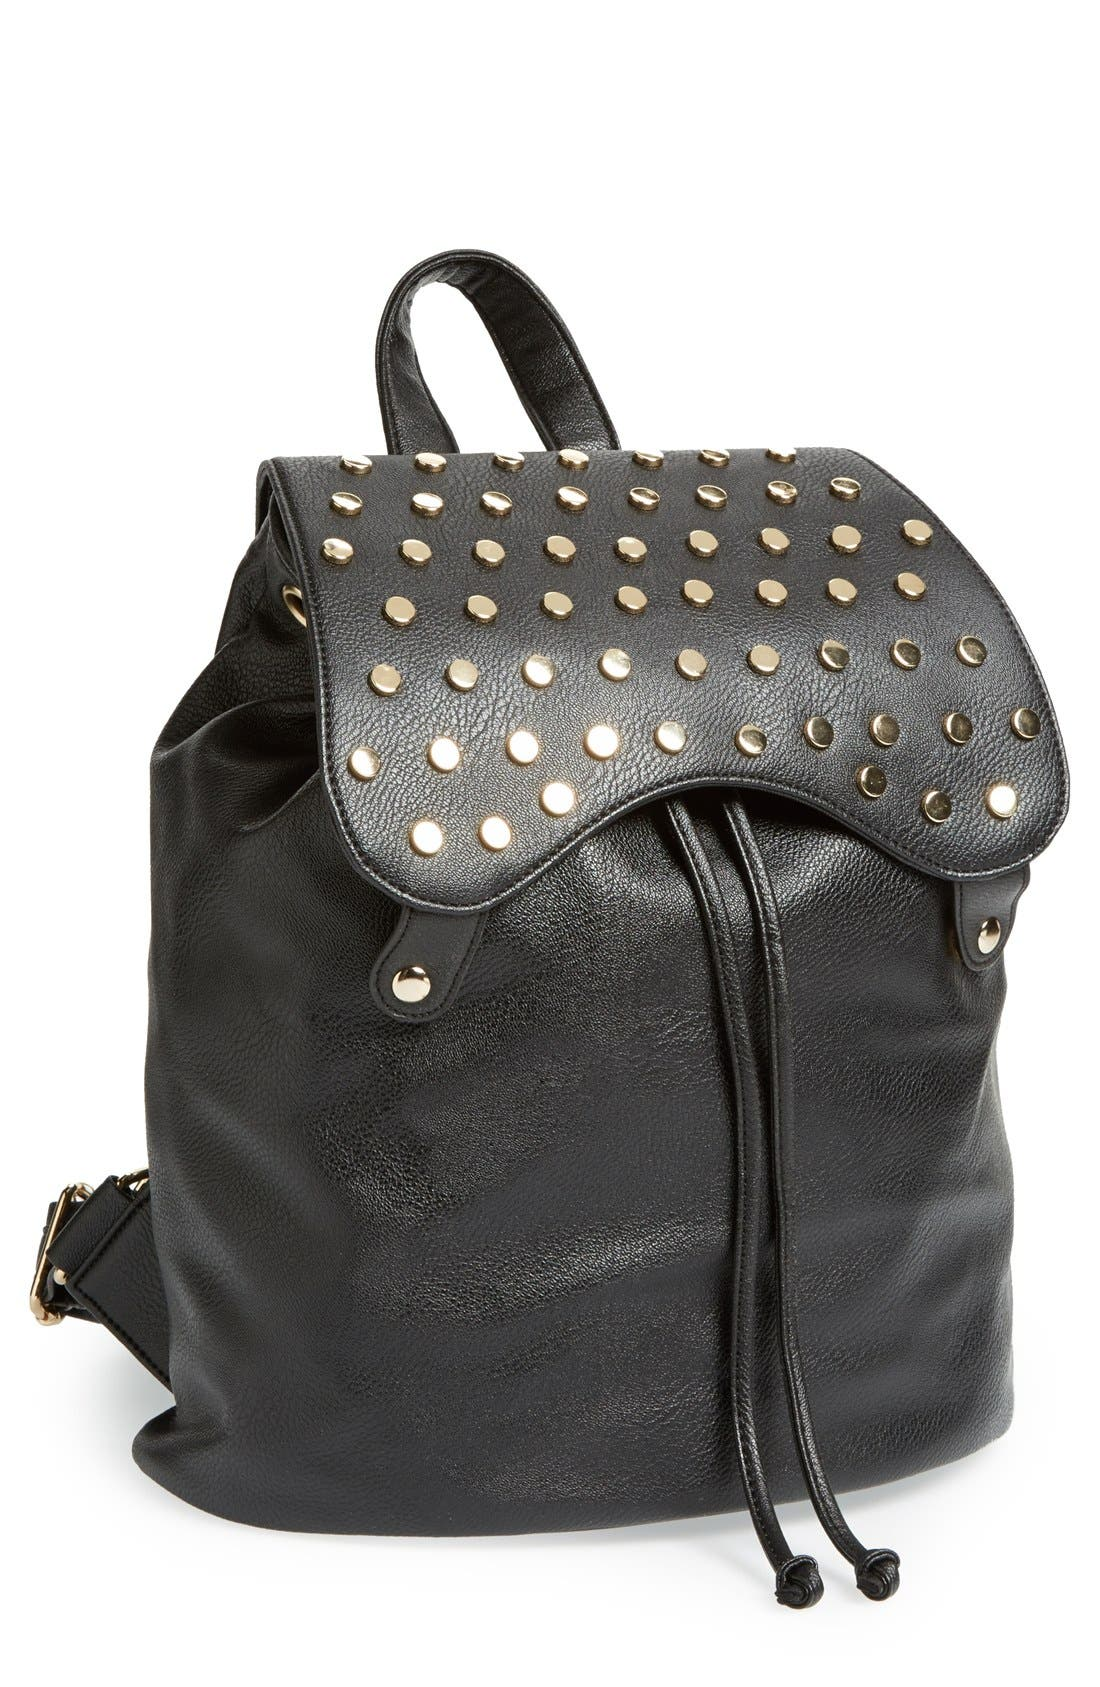 Main Image - Sole Society 'Nellie' Studded Faux Leather Backpack